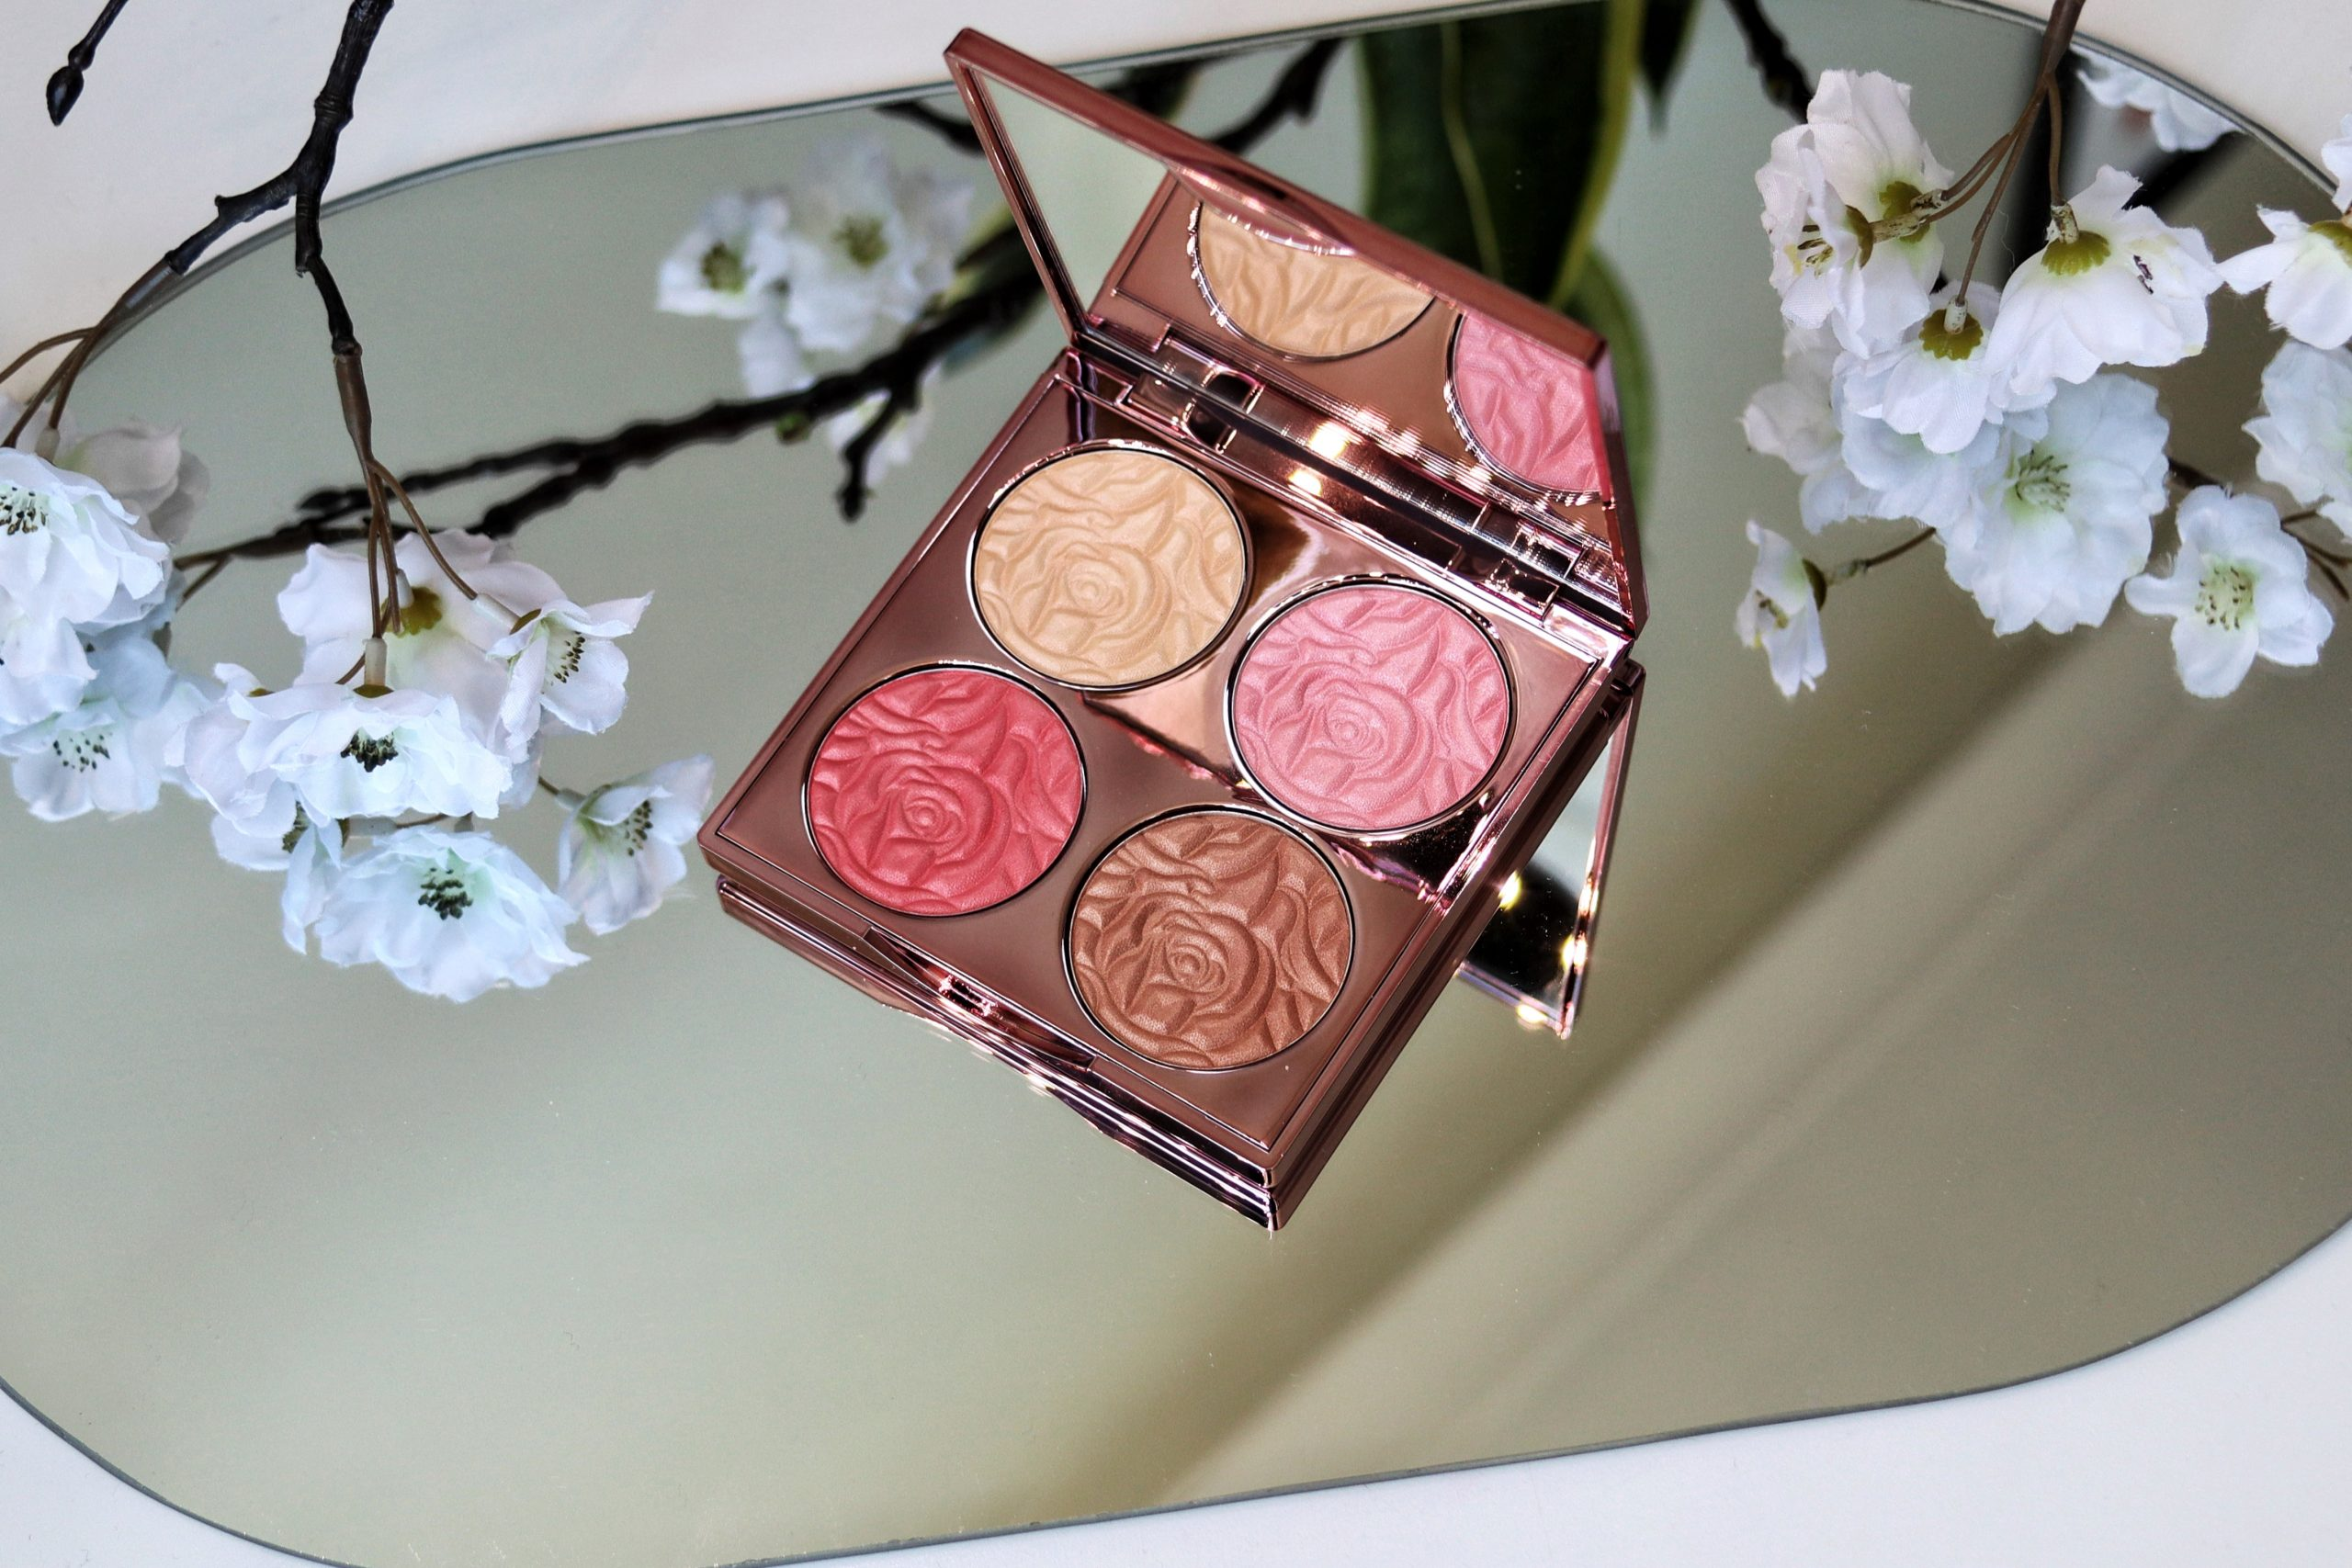 By Terry Brightening CC Palette. Image of a highlighter and blush palette on a mirror with white flowers surrounding it.